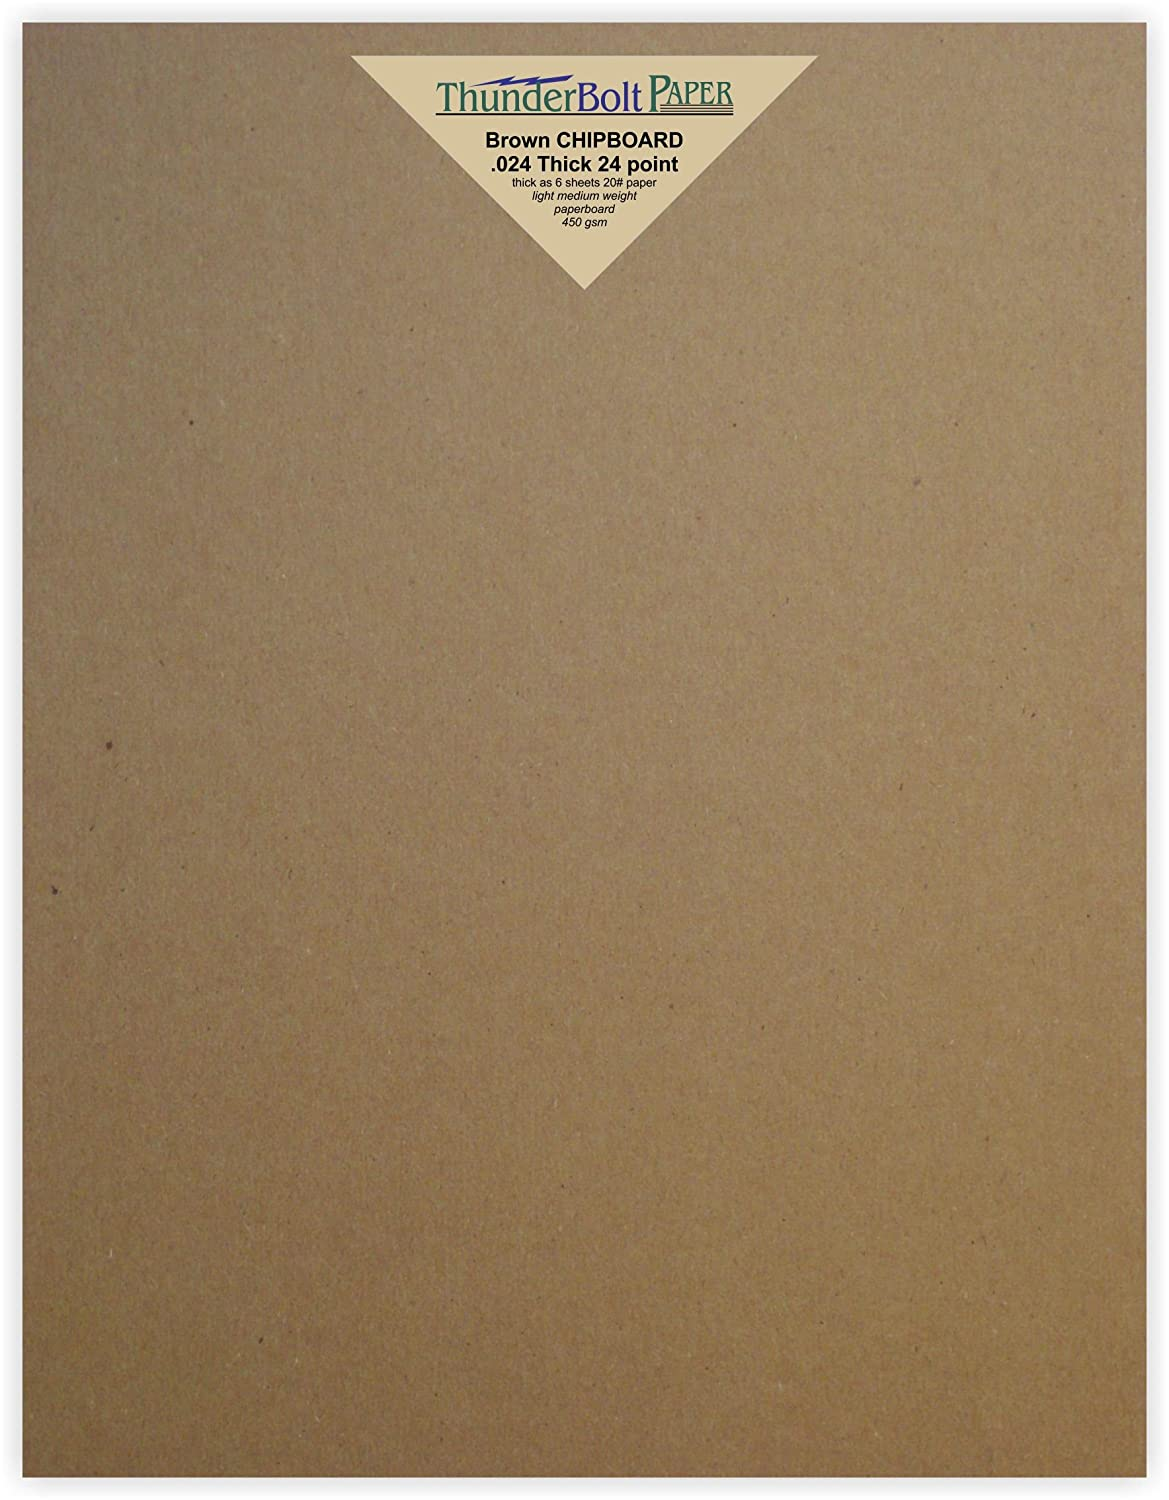 100 Sheets Chipboard 24pt (point) 8 X 10 Inches Light Medium Weight Frame|Photo Size .024 Caliper Thick Cardboard Craft|Packing Brown Kraft Paper Board TBP 4336978337